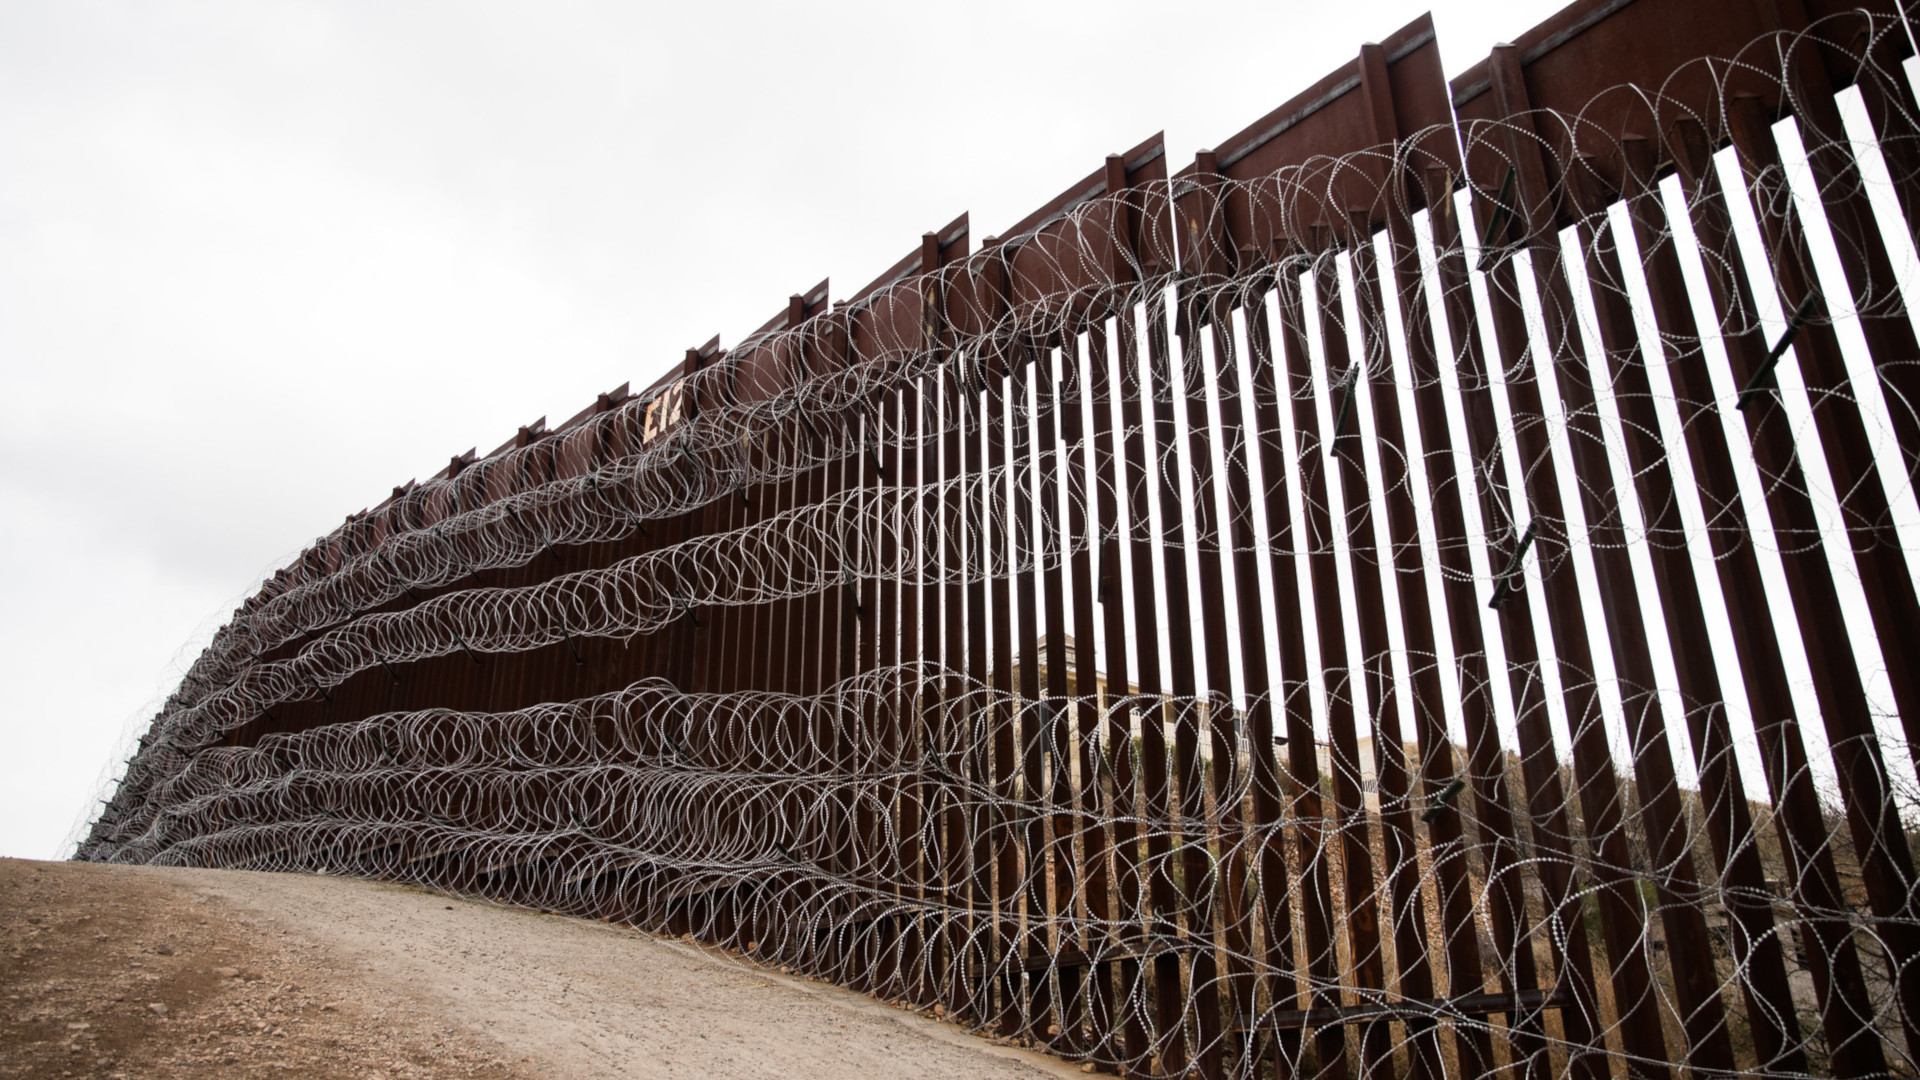 'This Is Not Like a Fence in a Backyard' — Trump's Border Wall vs. Wildlife • The Revelator